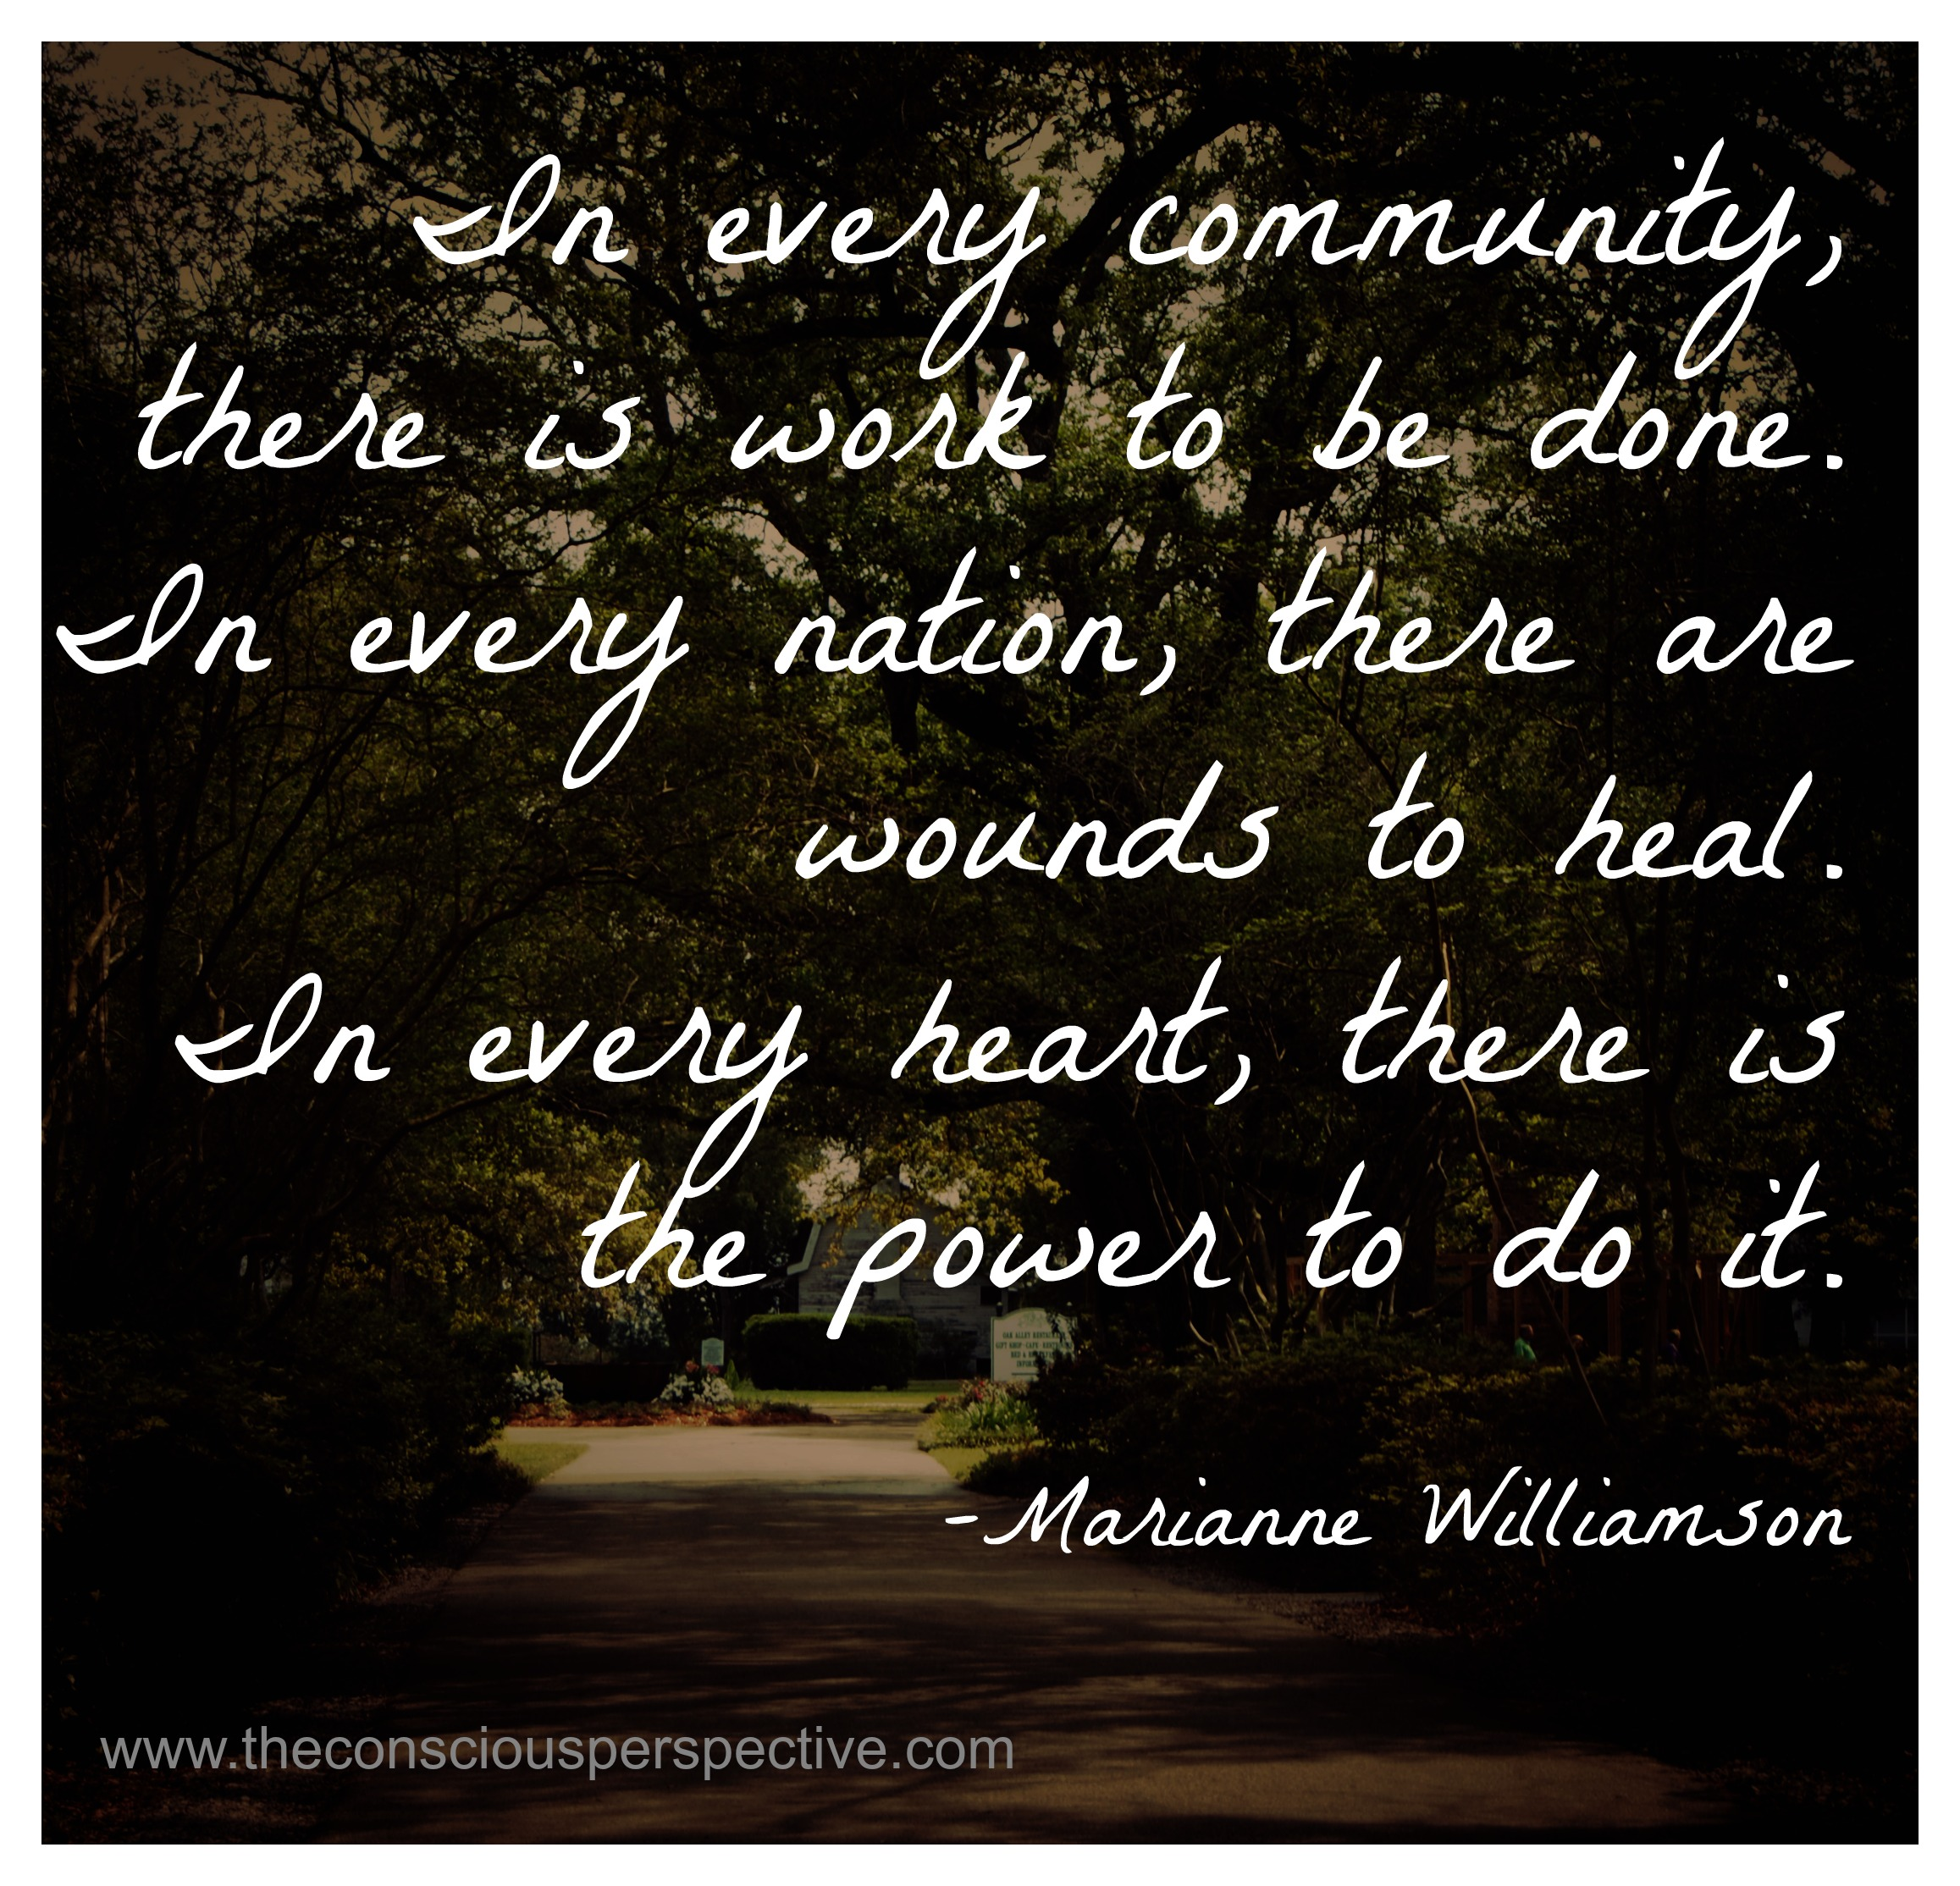 Community Quotes In Every Communitythere Is Work To Be Donein Every Nation